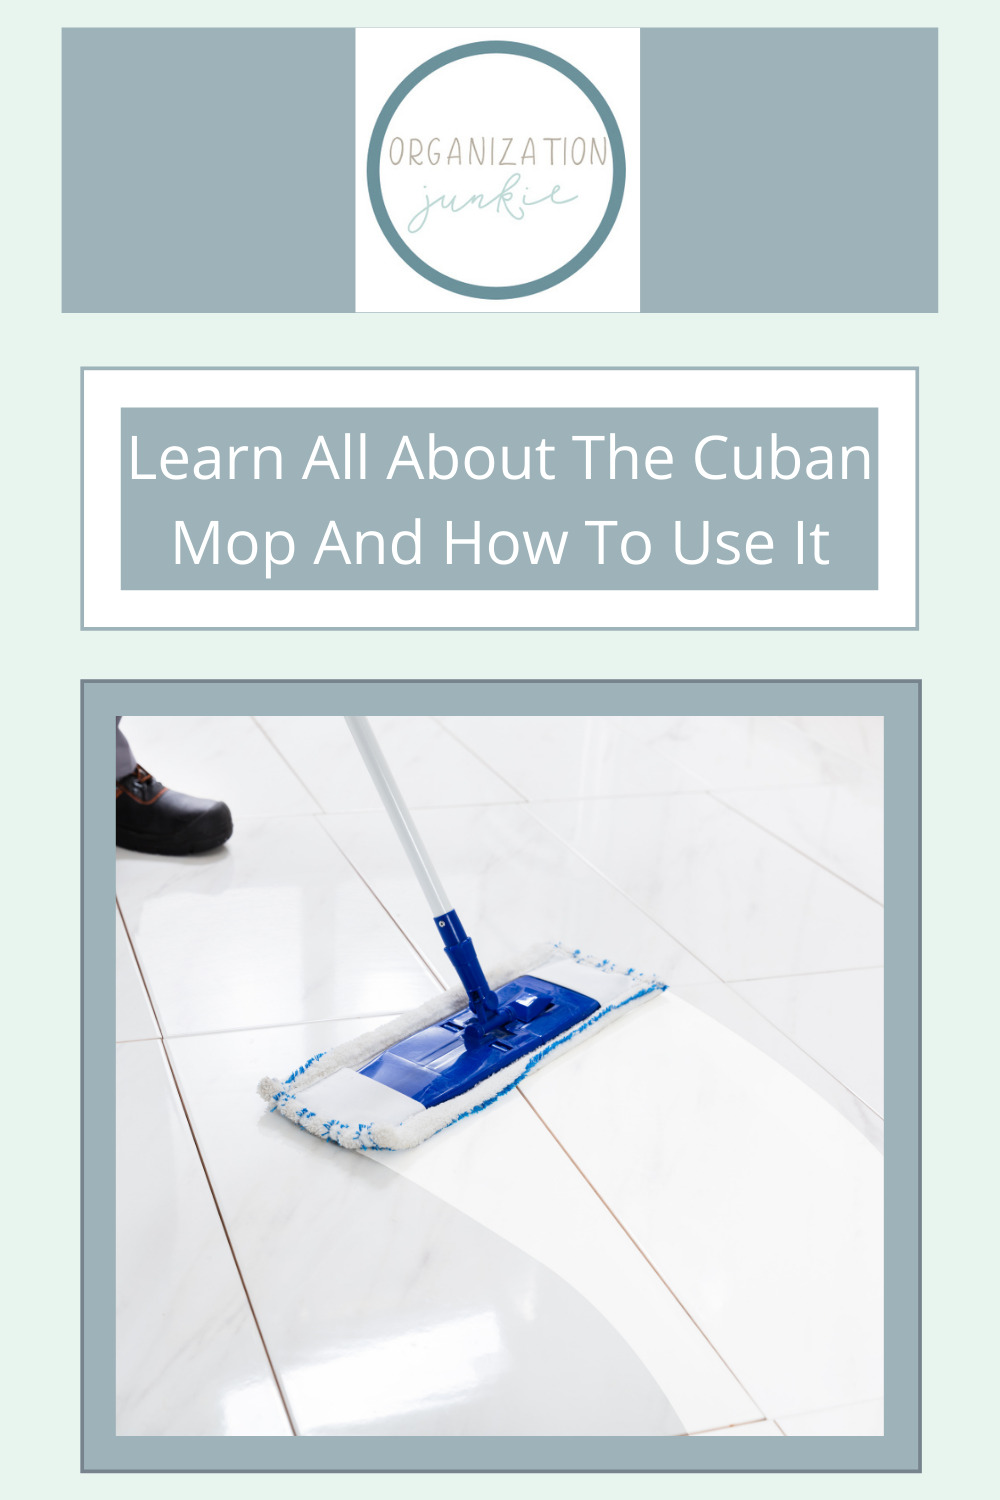 Organizationjunkie.com is the ultimate resource for creative organization and cleaning solutions! Don't waste any more money or trash on traditional Swiffer mops! Check out these awesome Cuban mops for a more sustainable alternative.